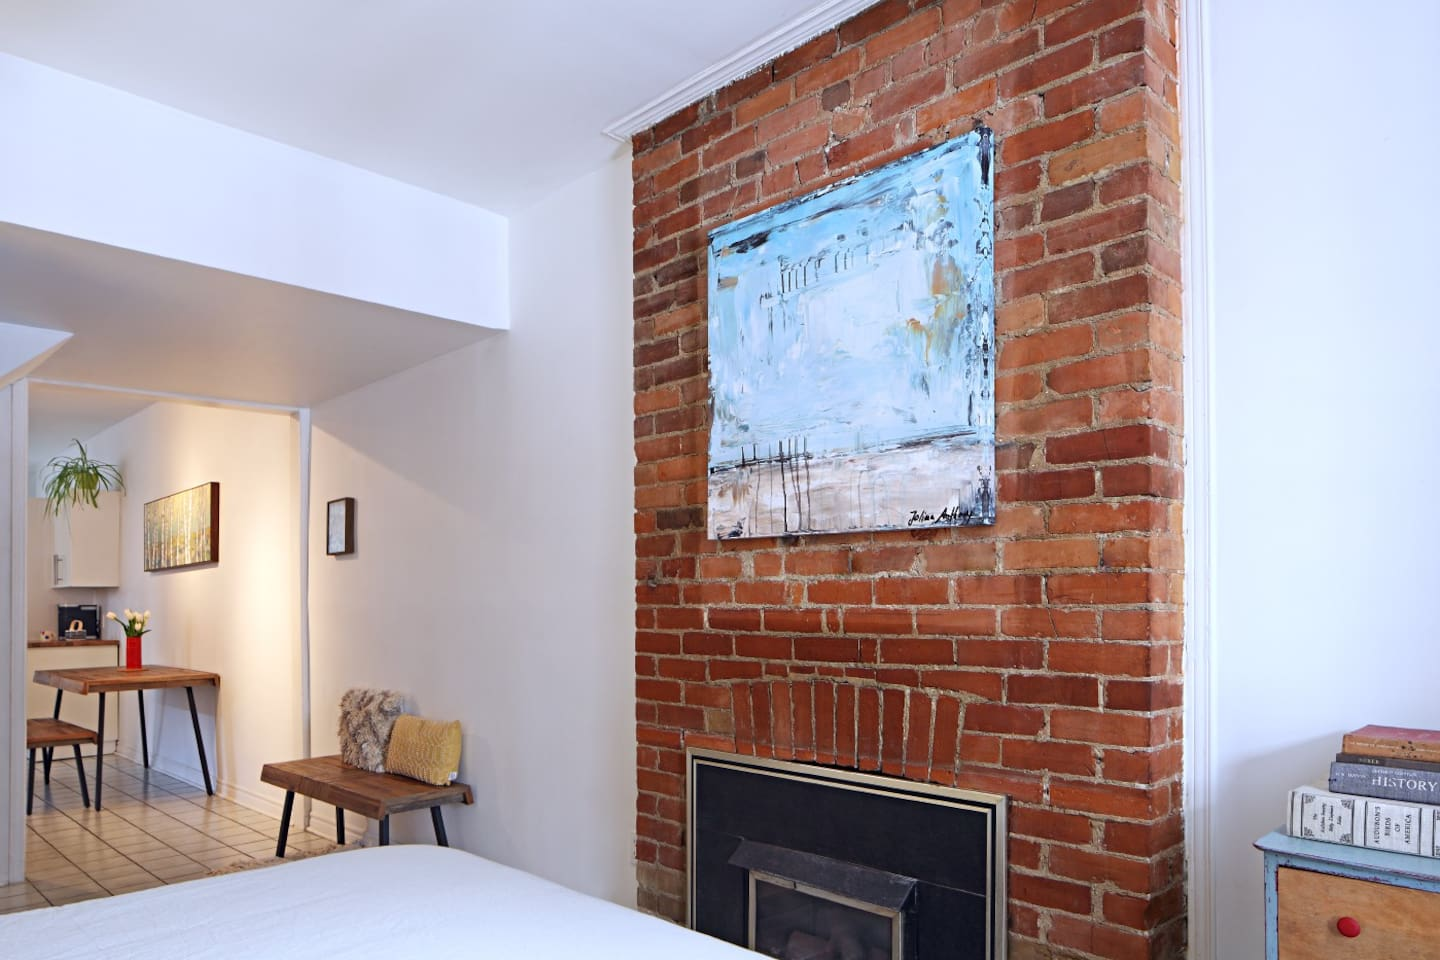 Exposed brick and decorative fireplace in the bedroom